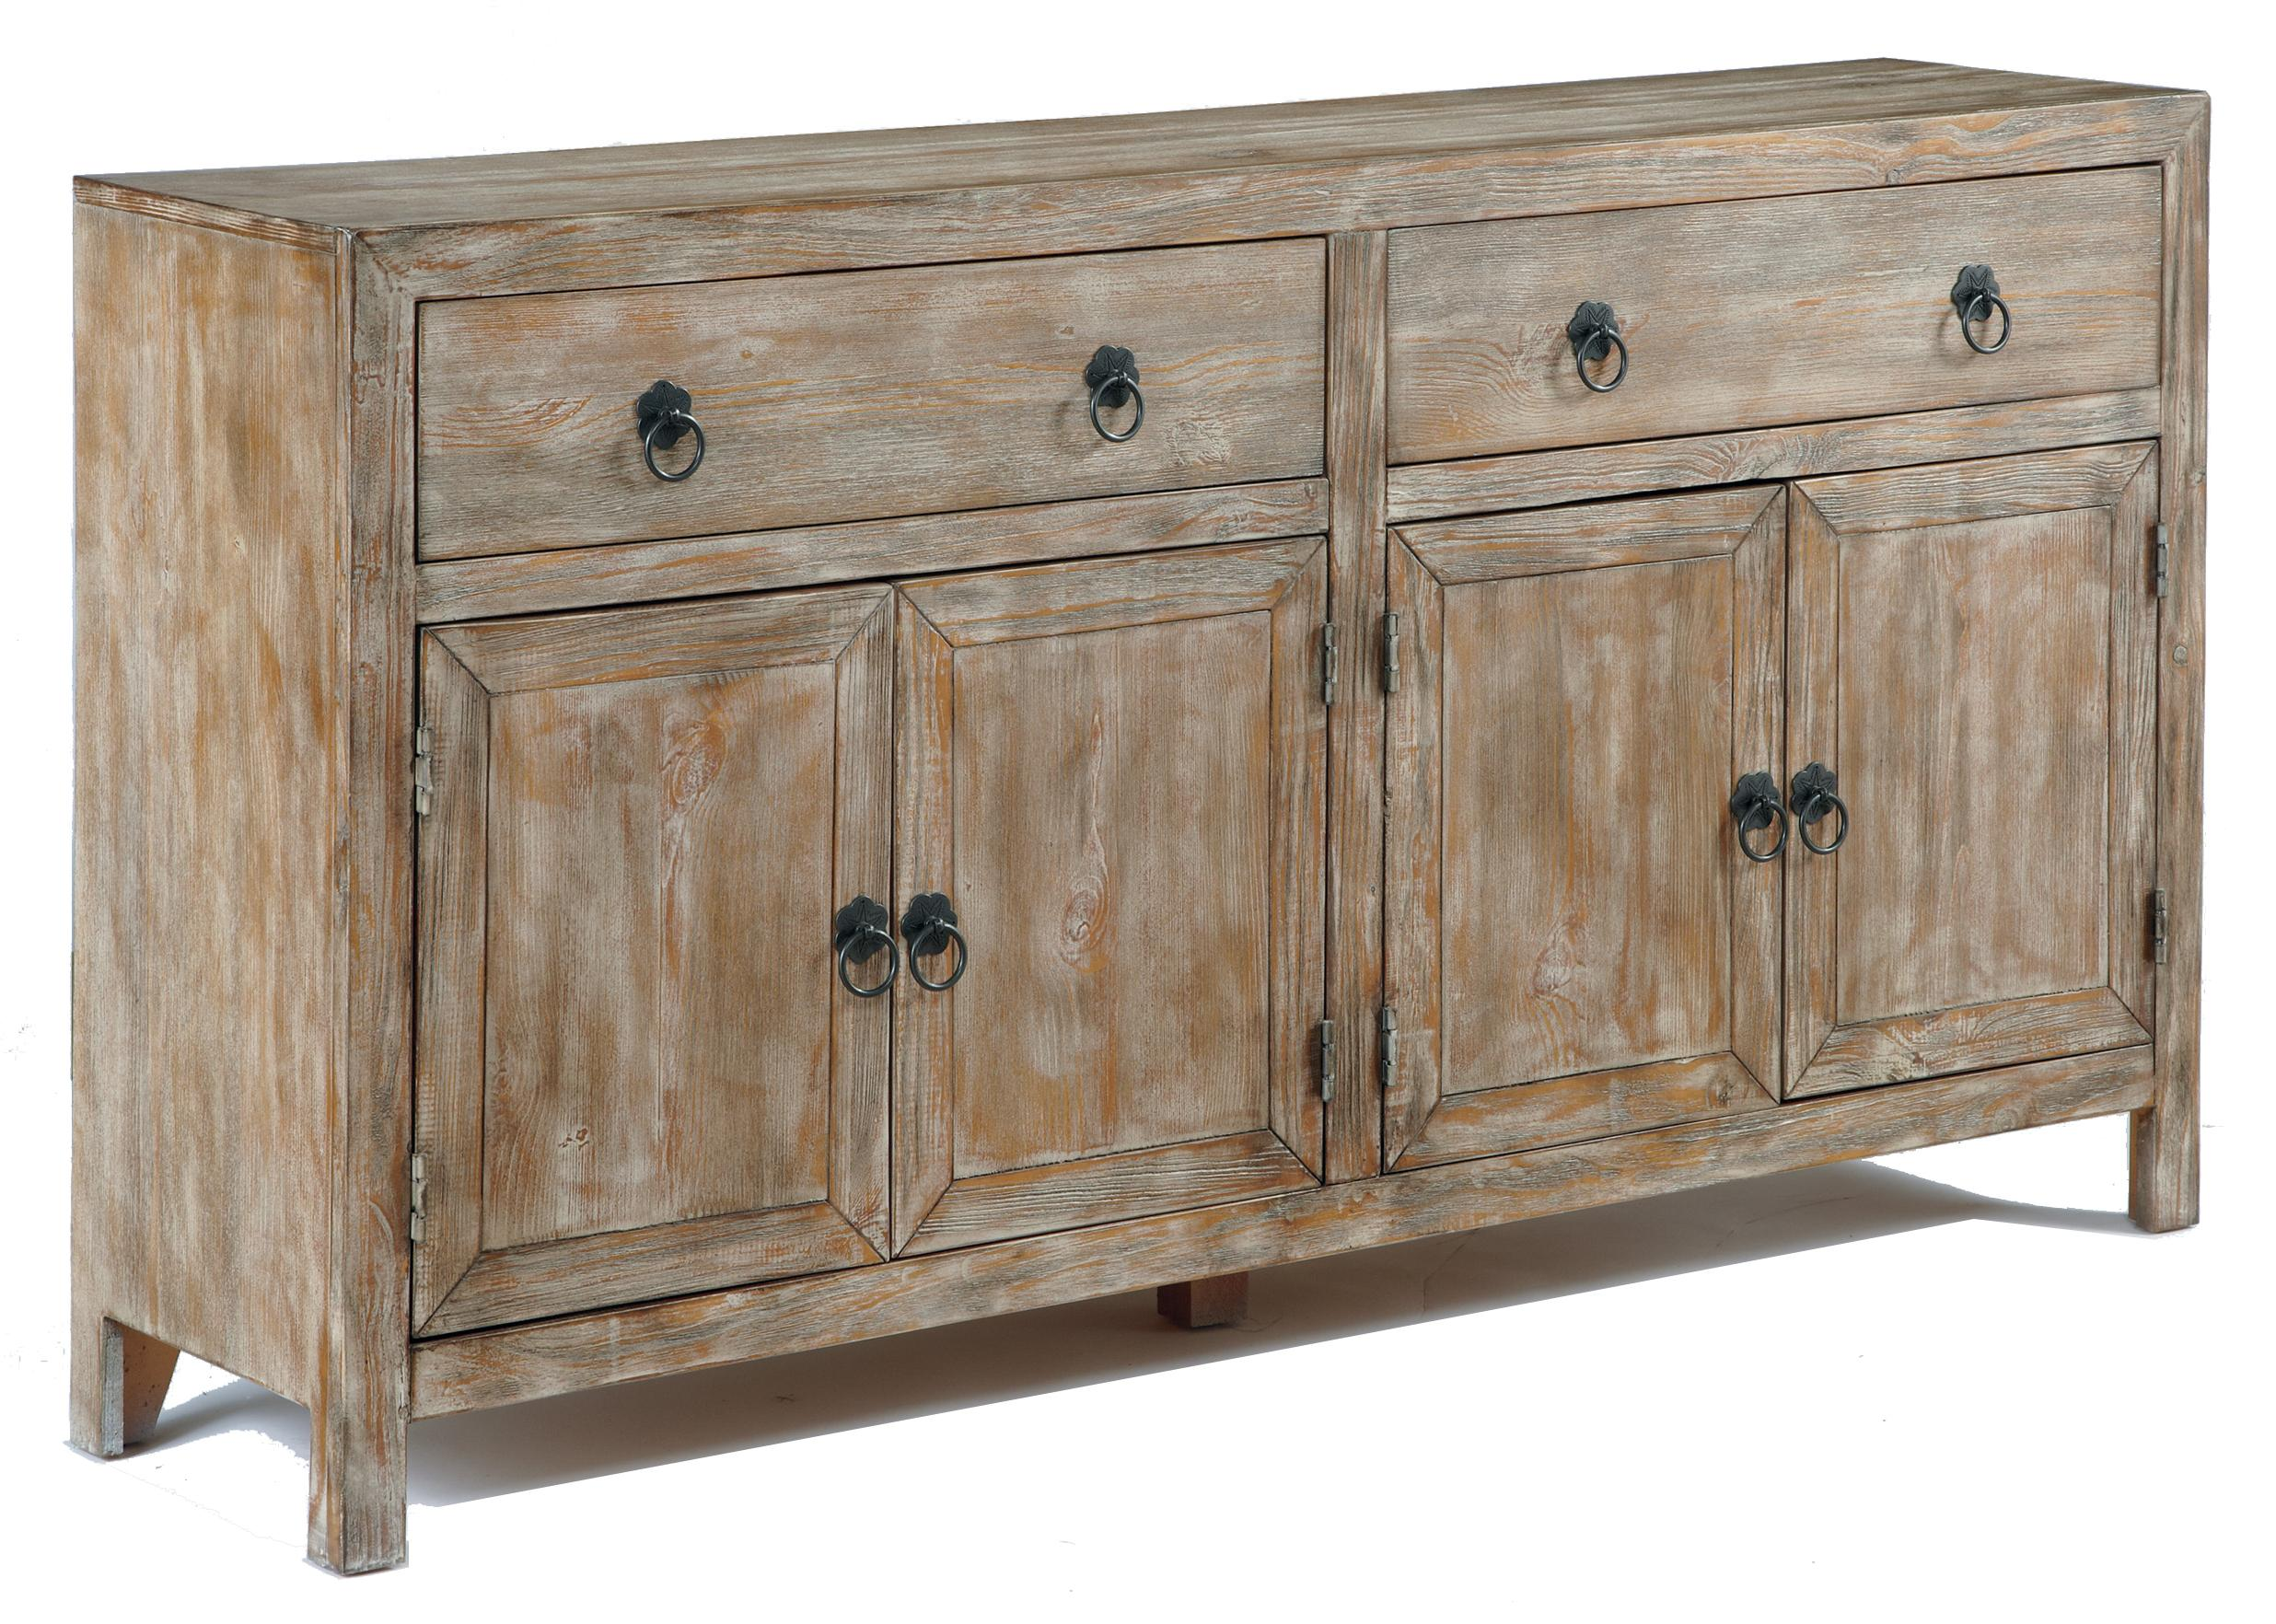 Sofa Table Cabinet Amazing Sofa Table Cabinet 33 With